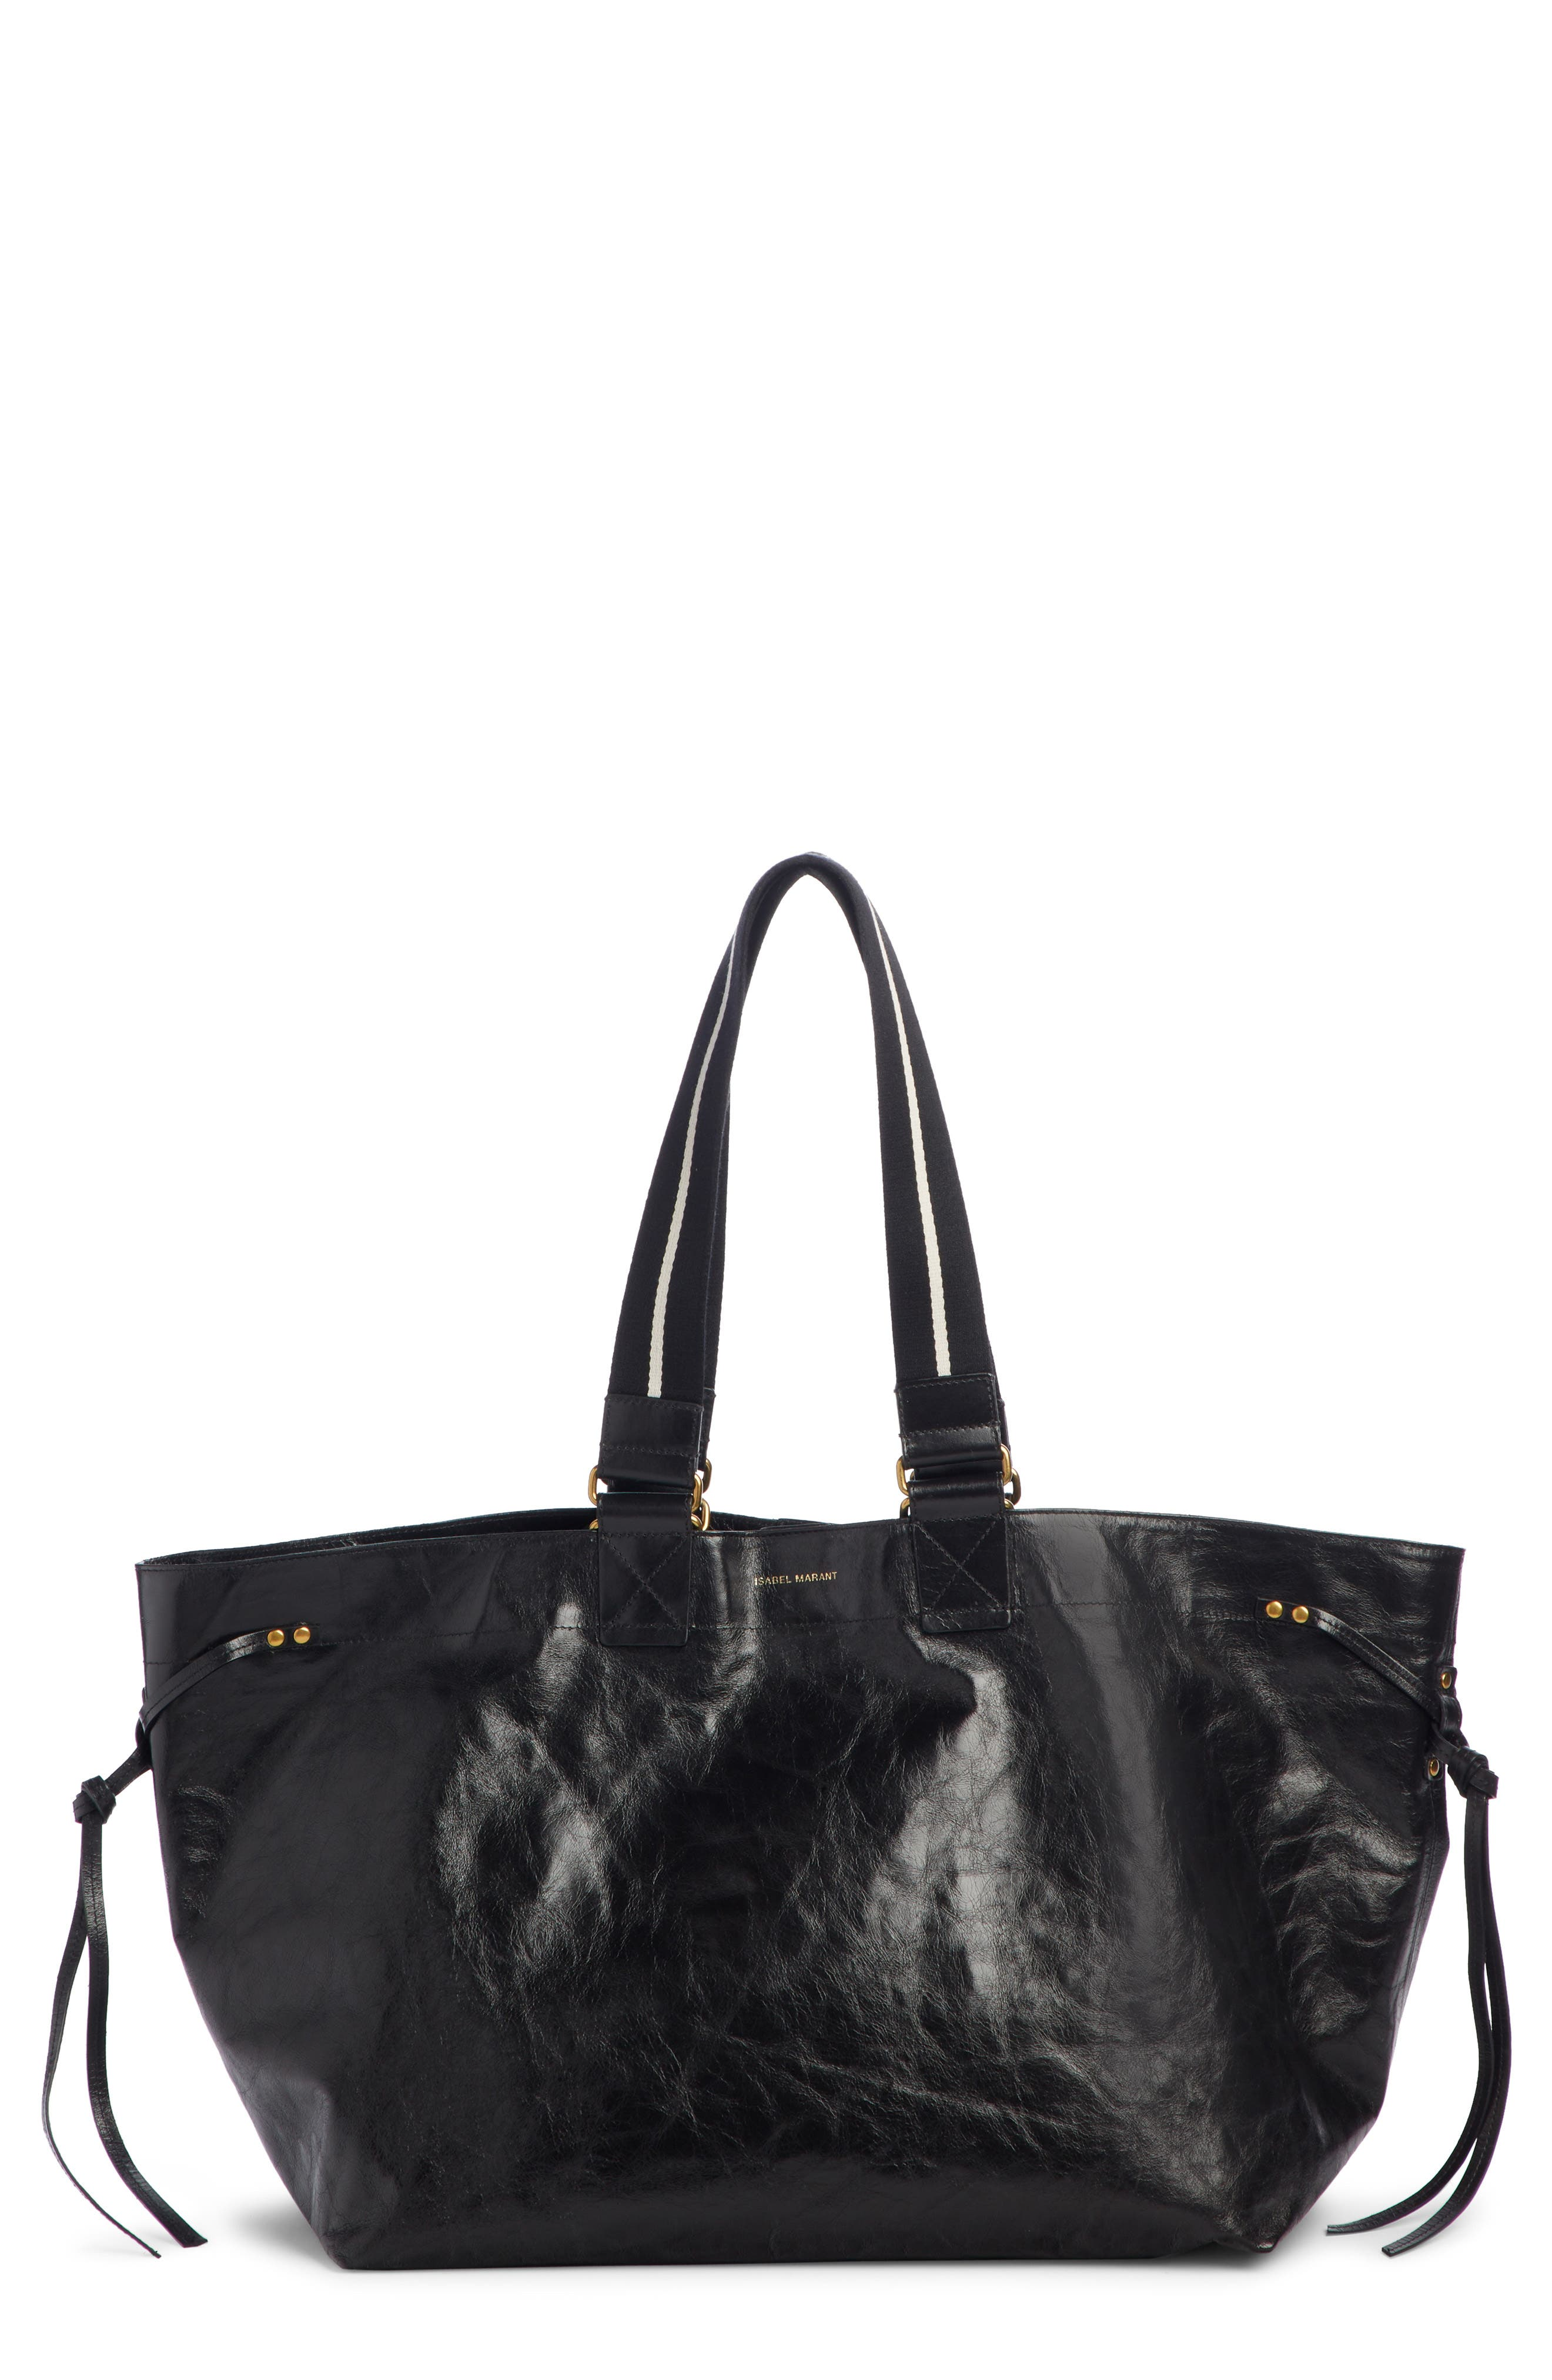 Wardy New Leather Shopper,                         Main,                         color, BLACK